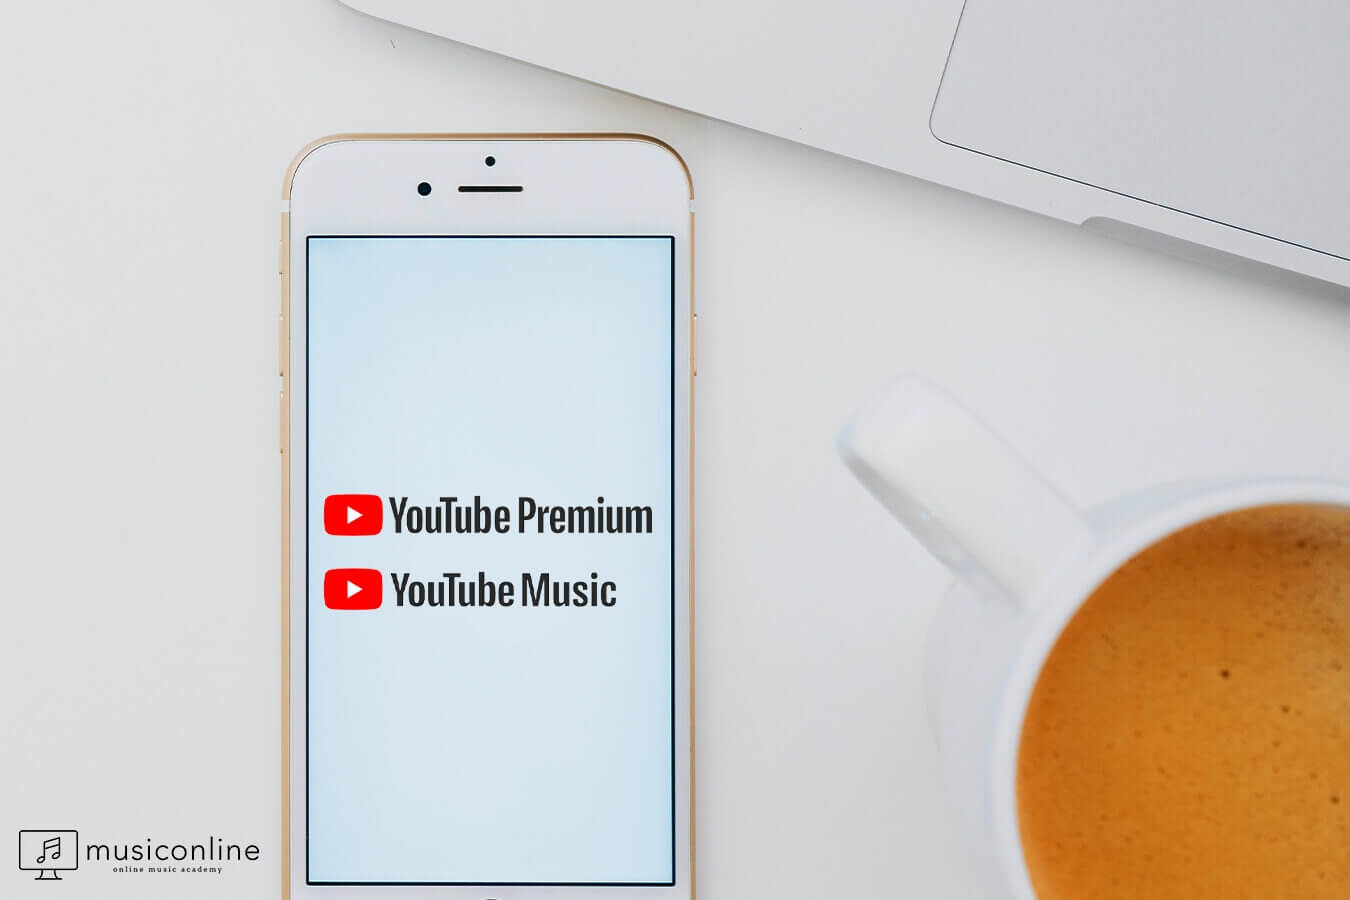 Youtube Premium & YouTube Music